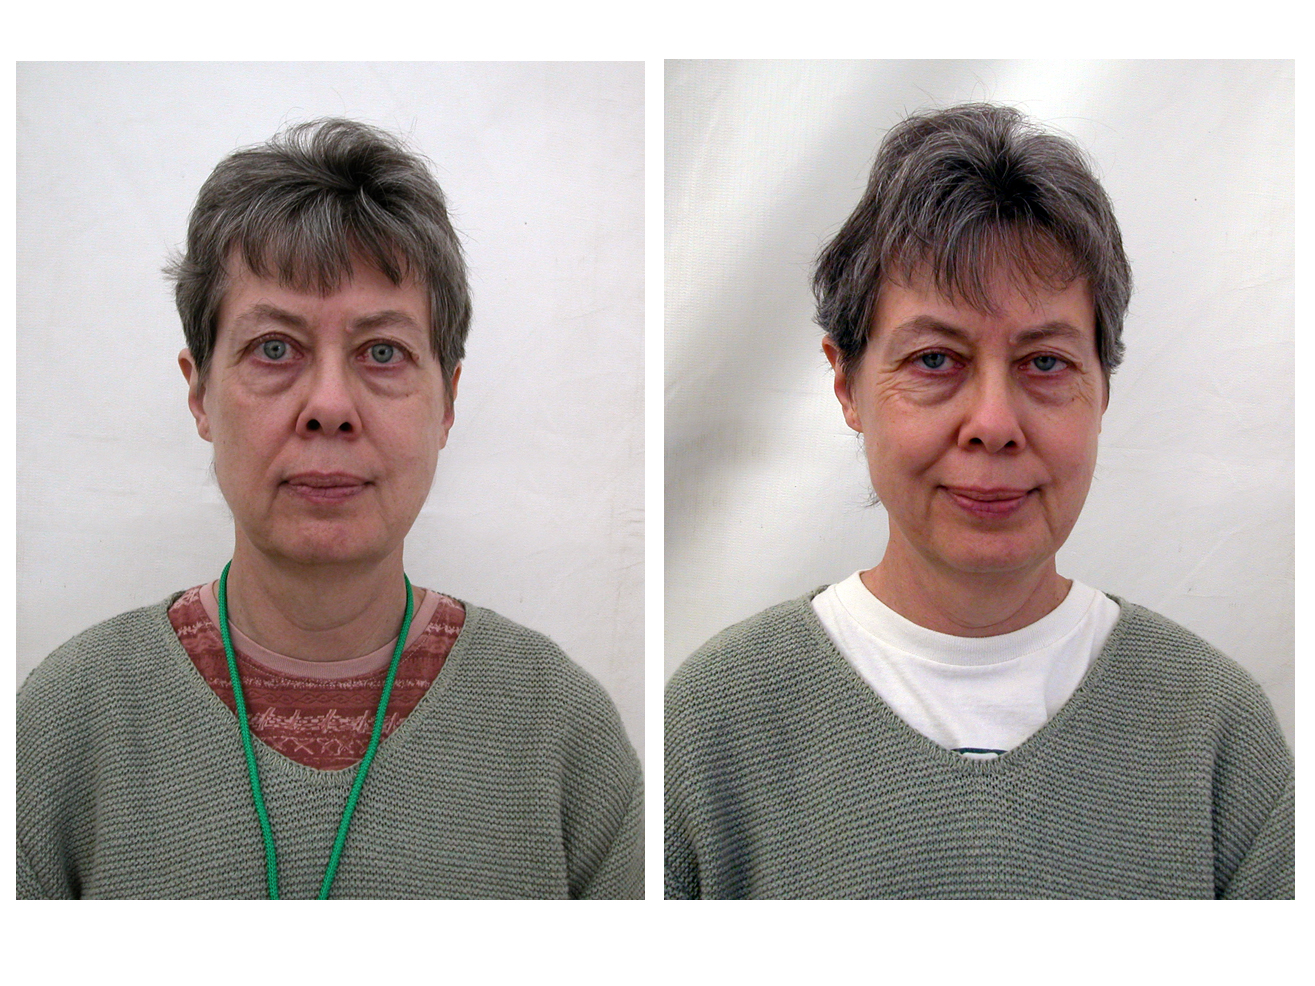 Before And After Portraits From Dathun